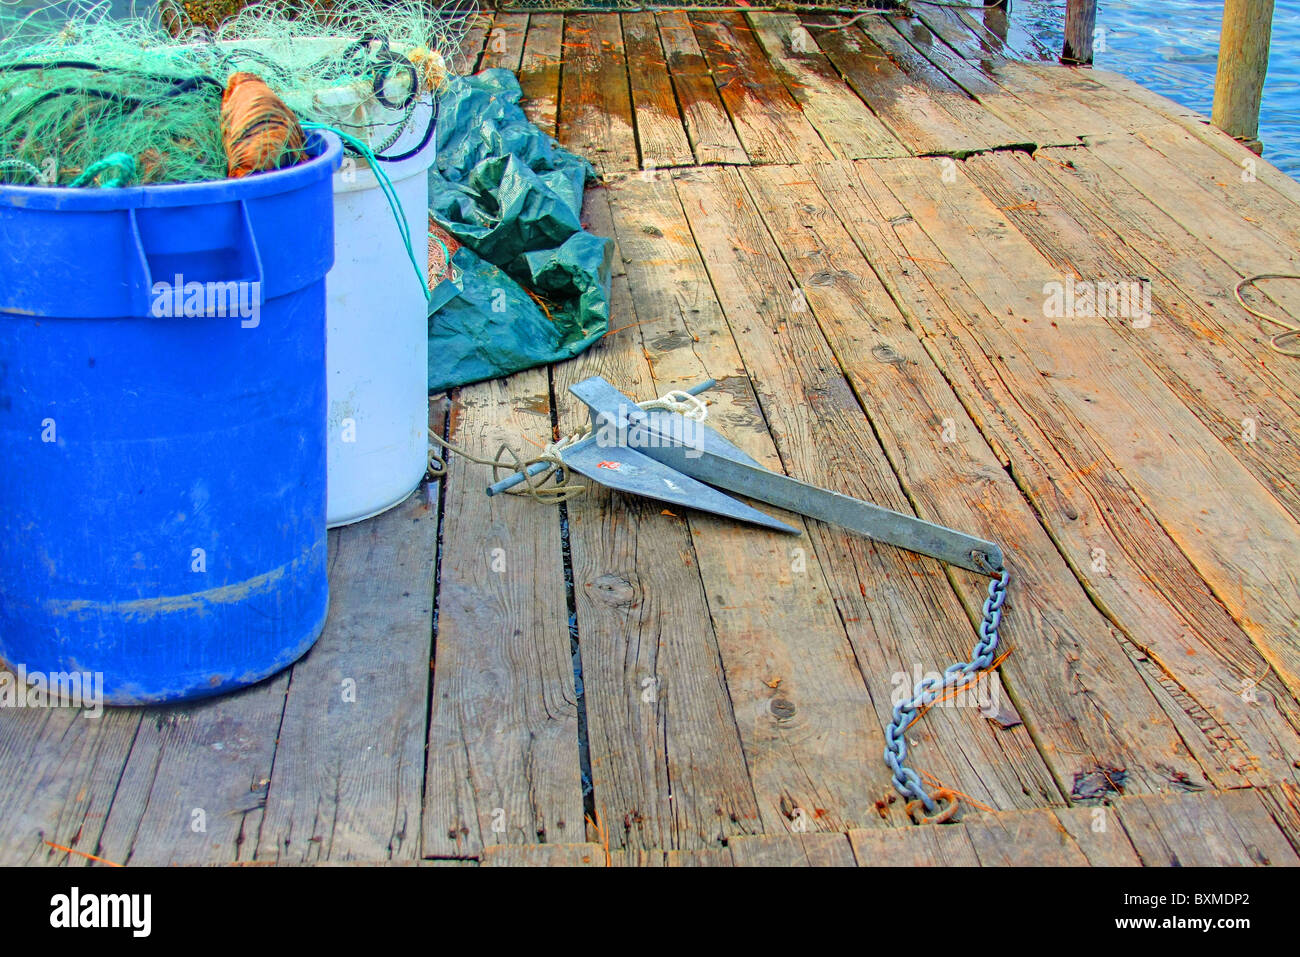 Anchor on a Dock with Plastic Barrels Holding Fishing Nets - Stock Image